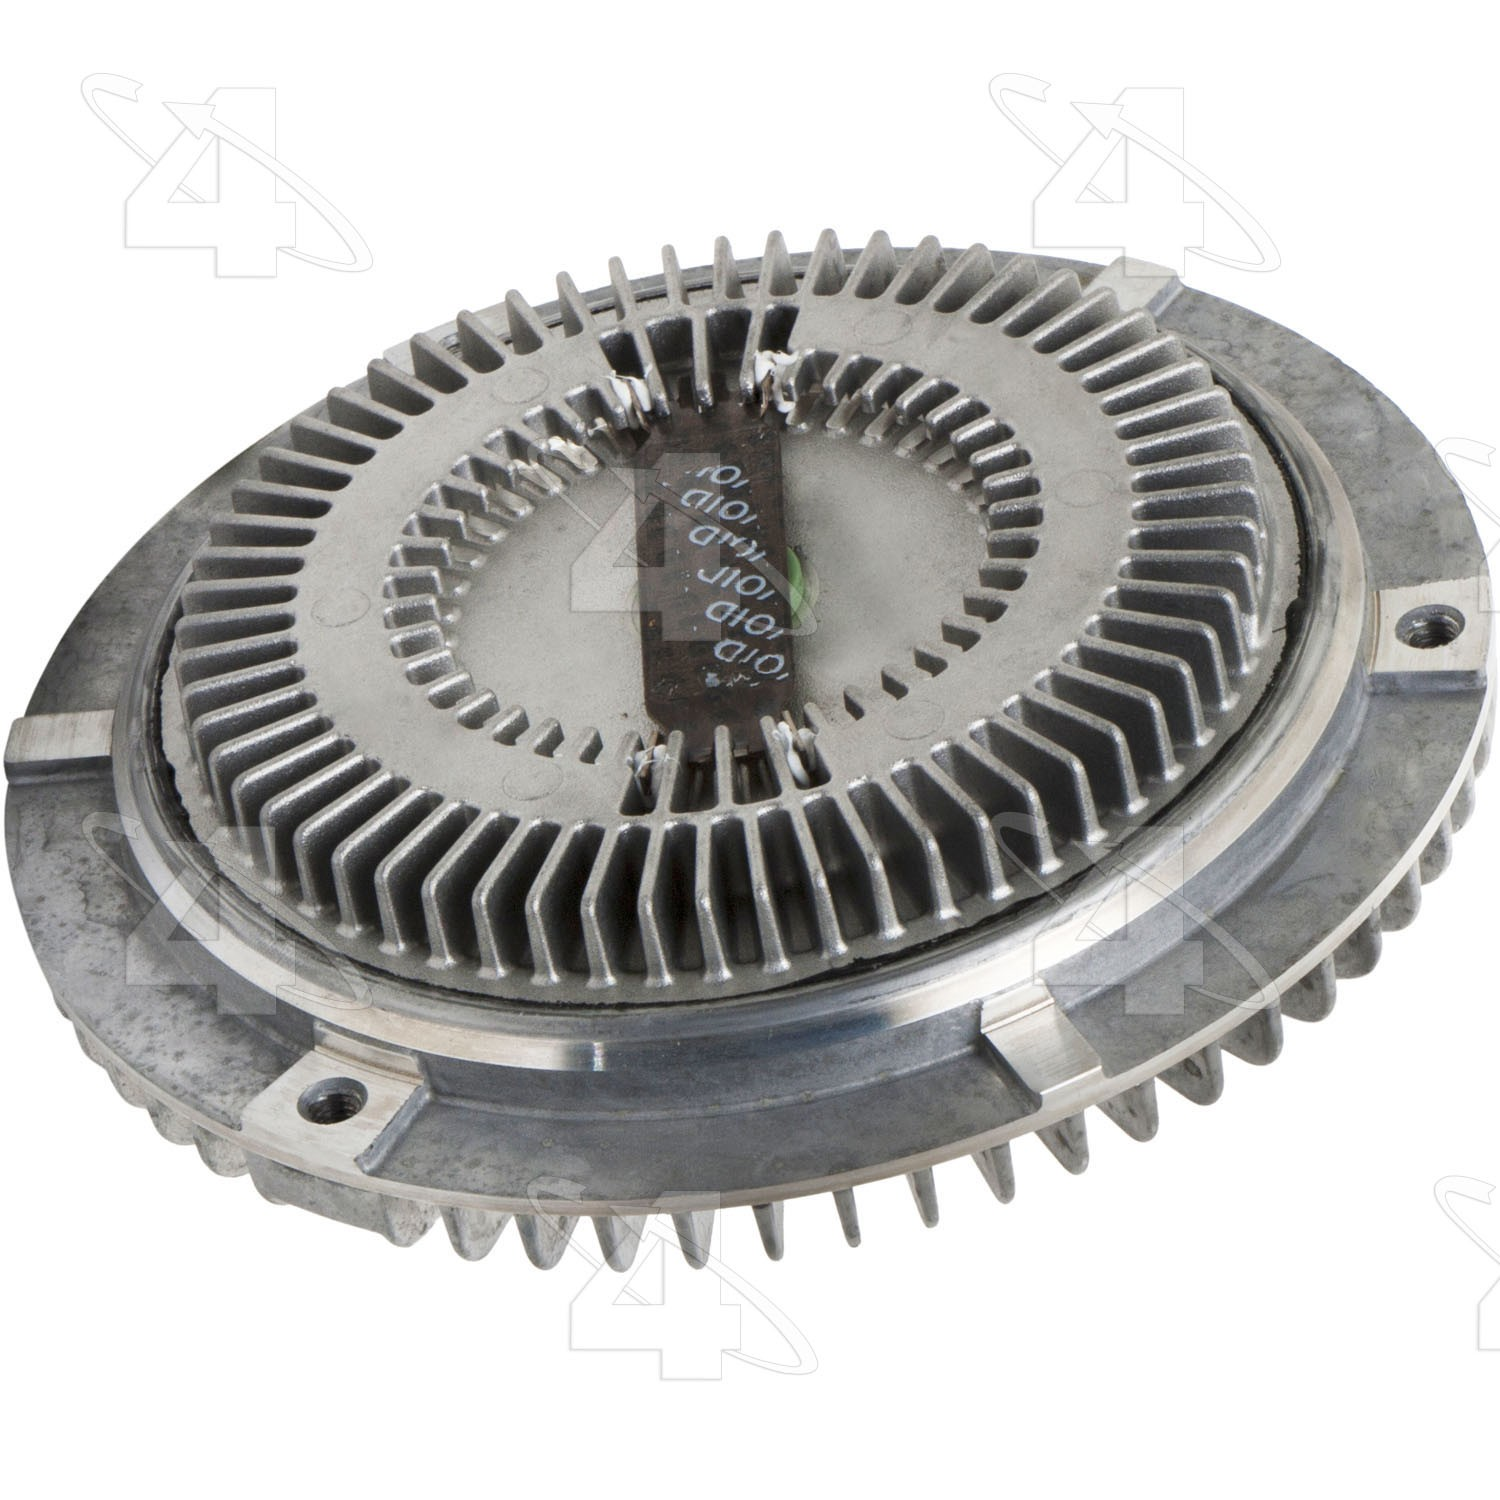 For Audi A6 A8 Quattro S6 S8 Engine Cooling Fan Clutch URO Parts 077121350D